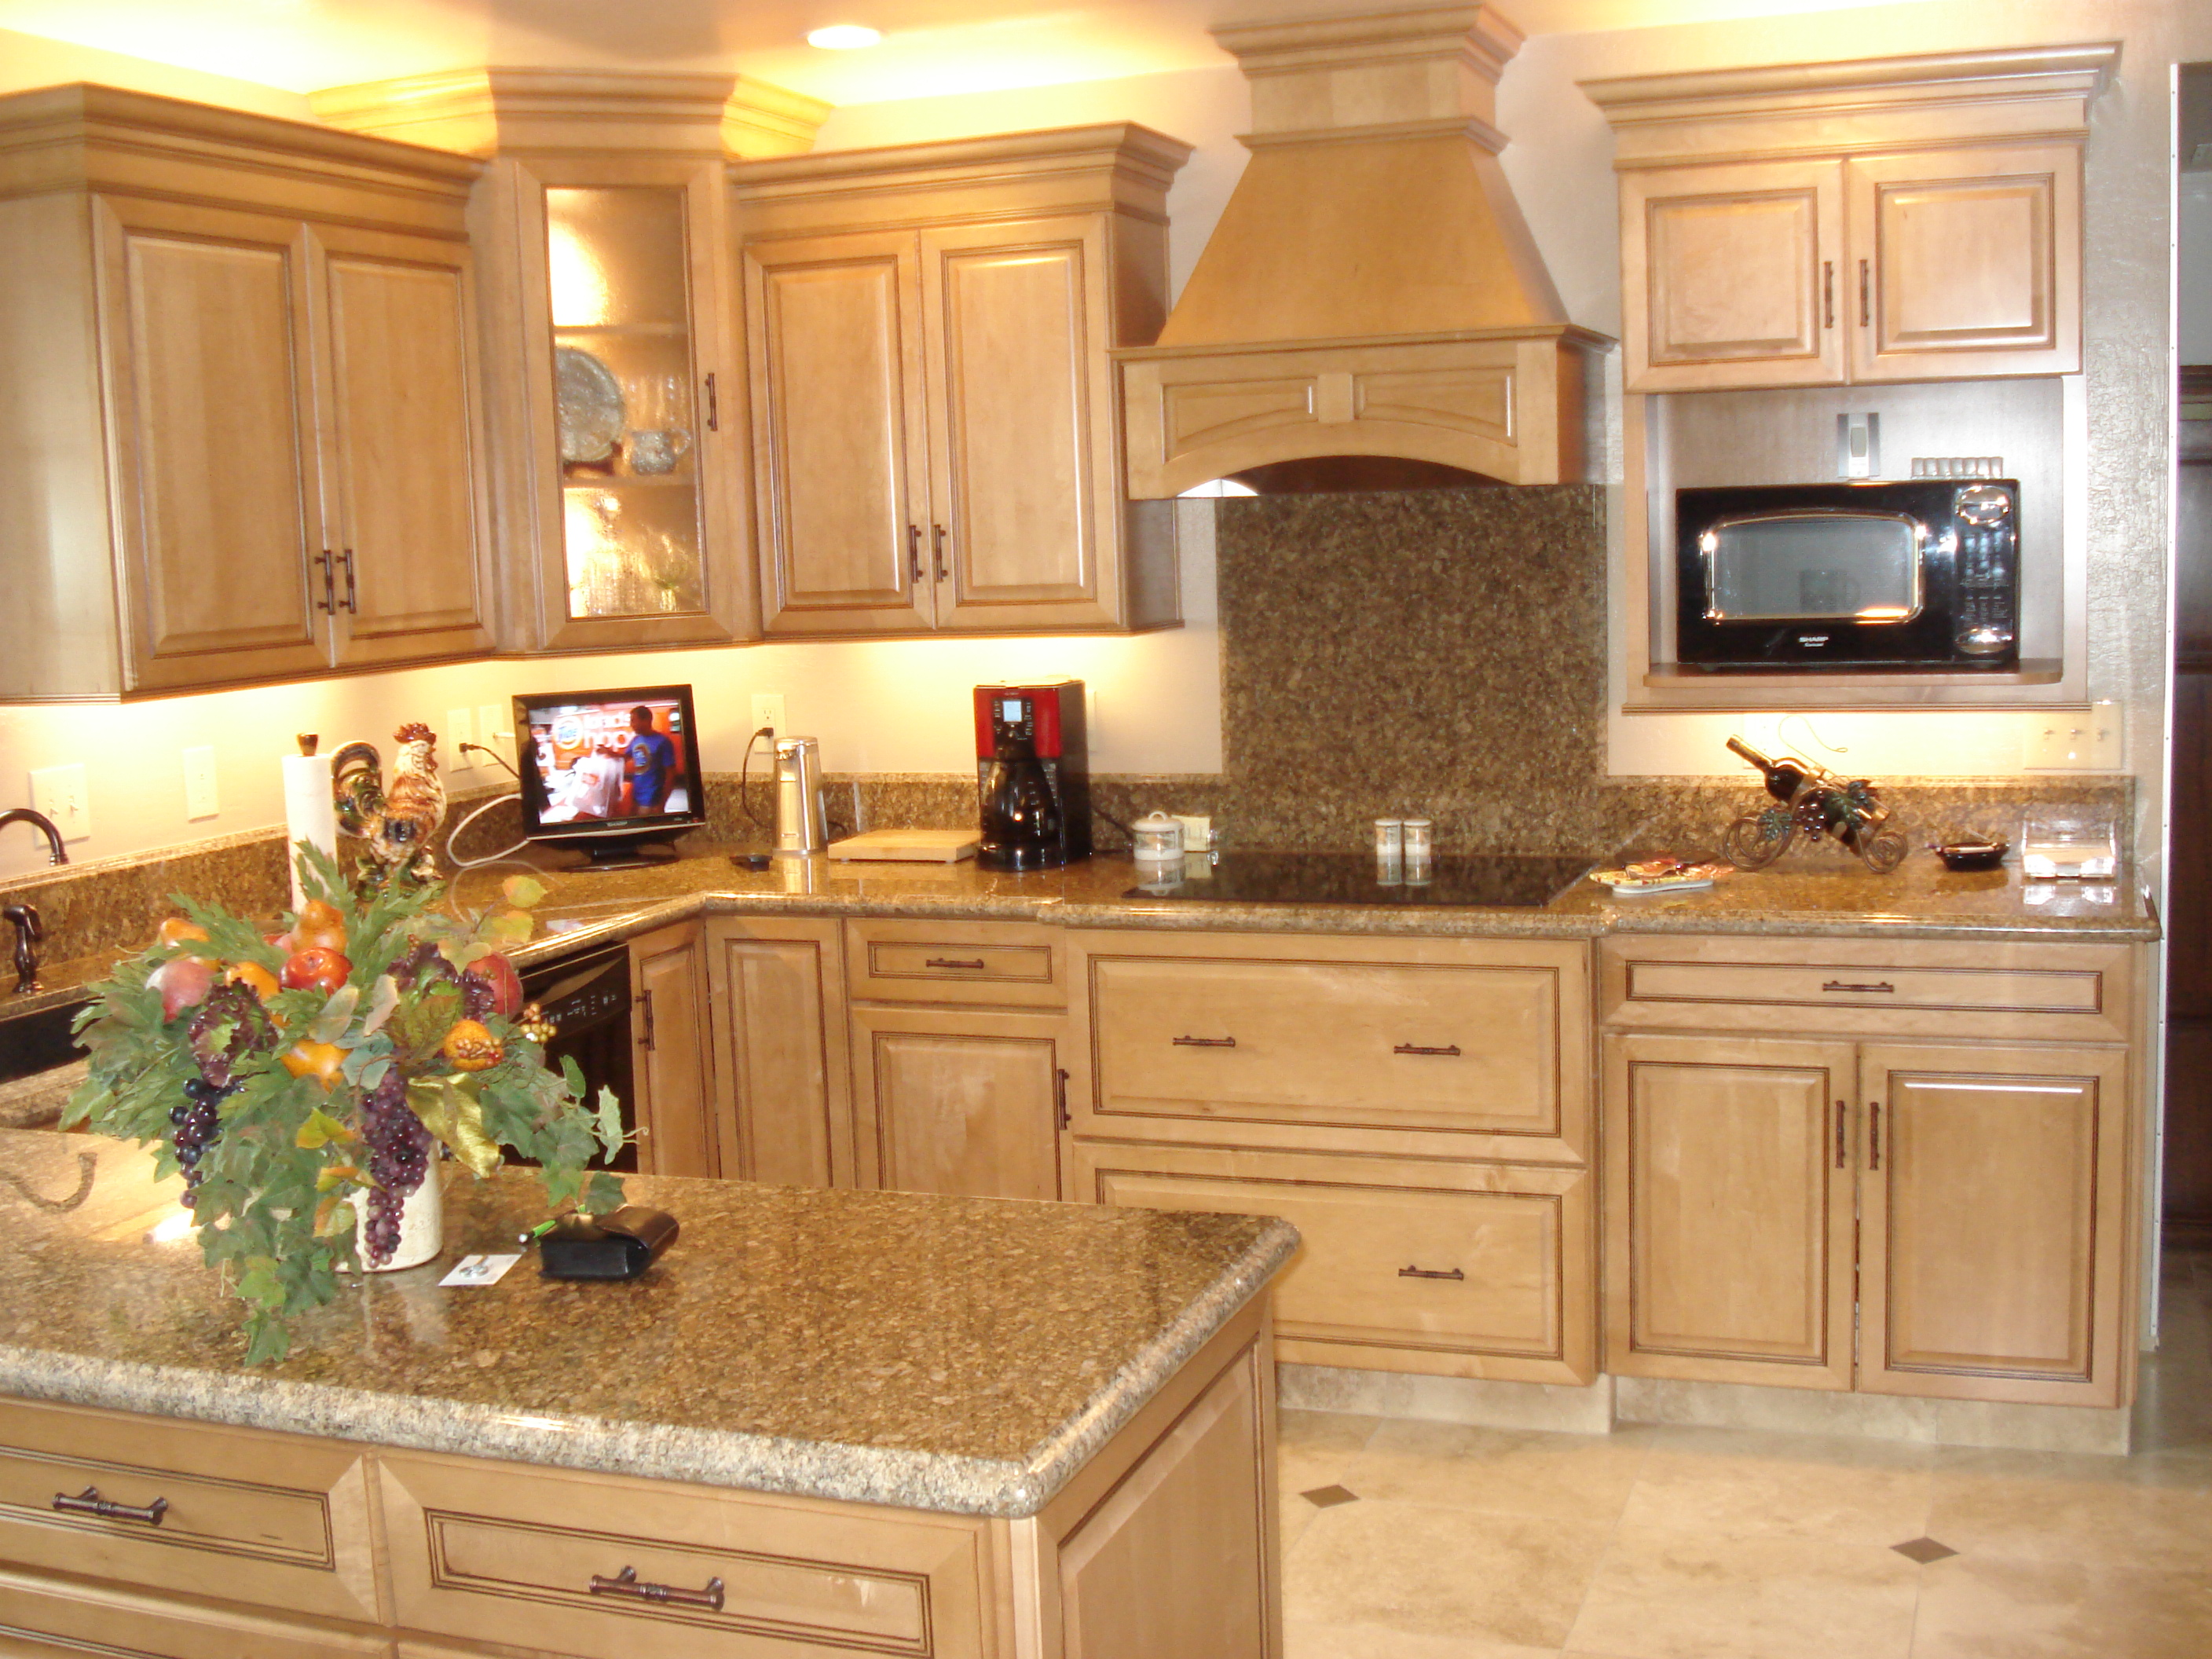 remodeling kitchens kitchen sink without cabinet remodels absolute electric